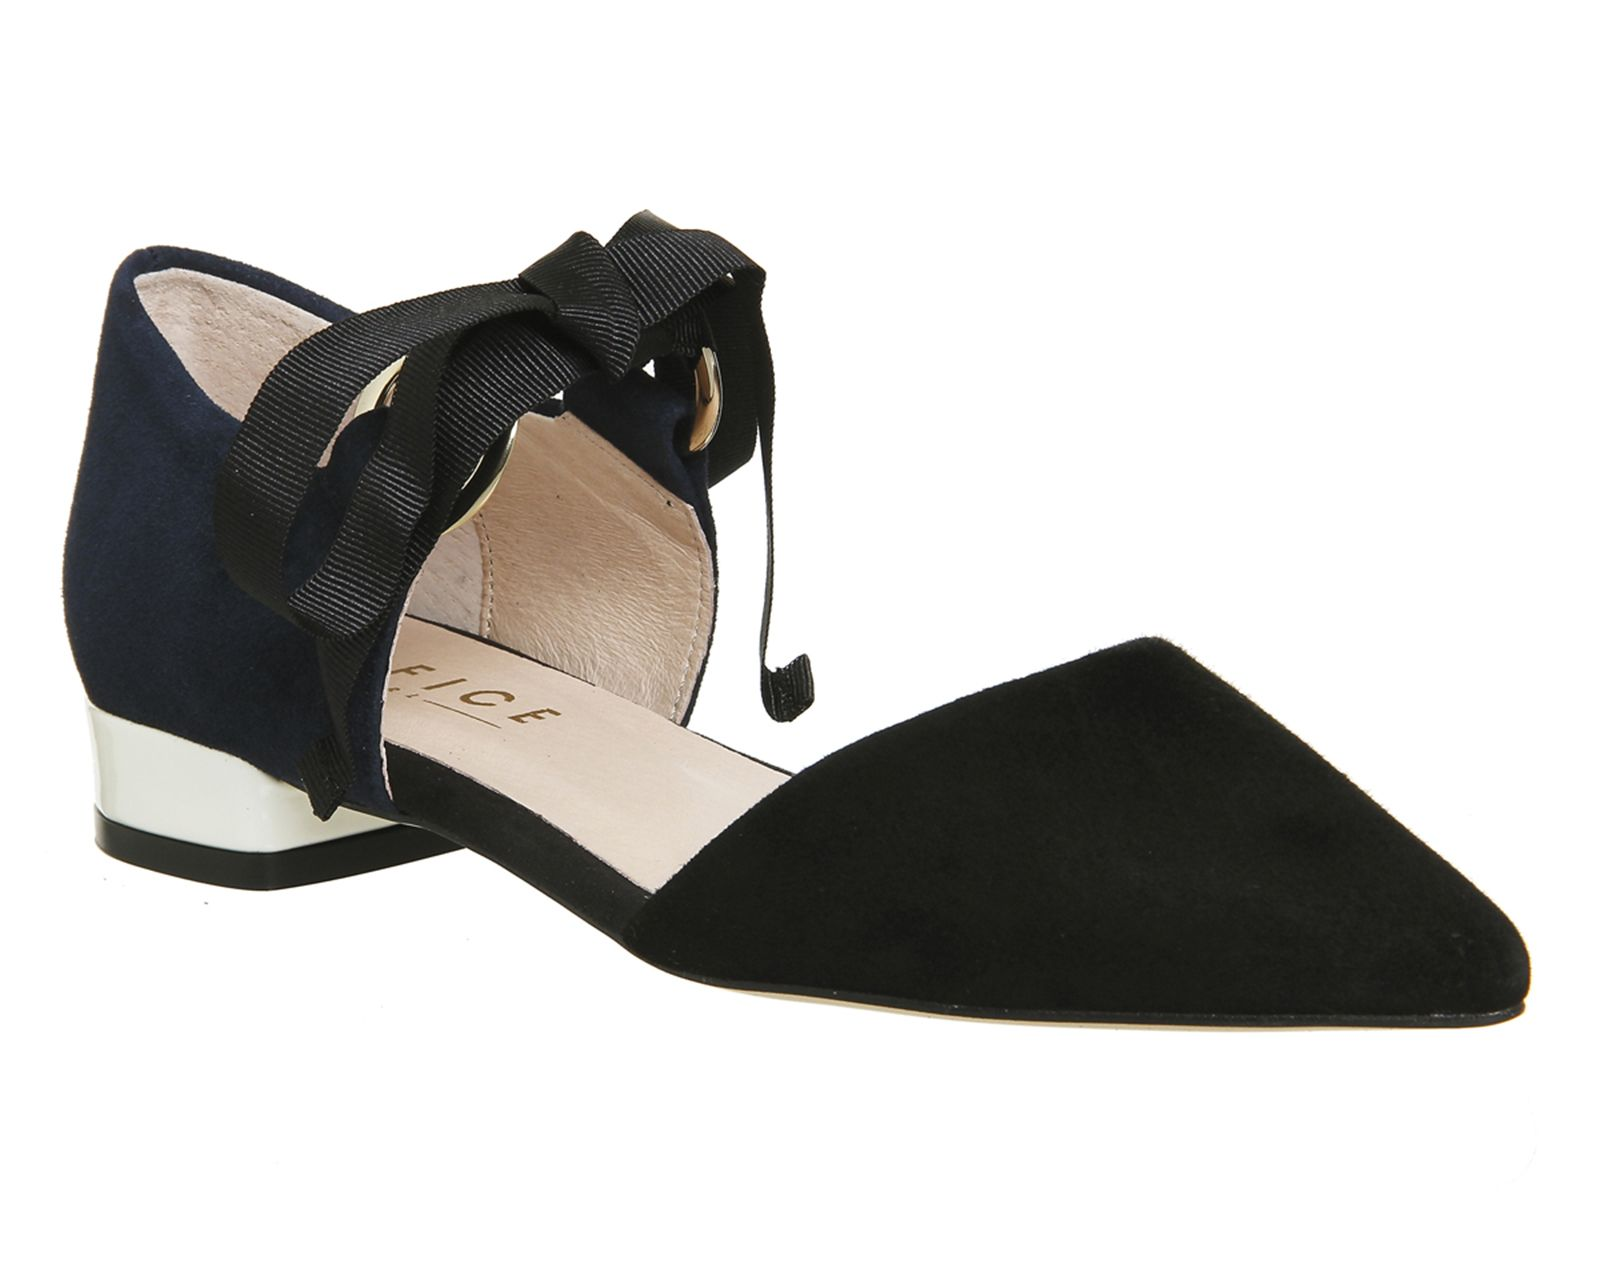 0529bdfc20e7 Office Dusty Two Part Point Pumps Black Suede Navy Suede - Flats ...